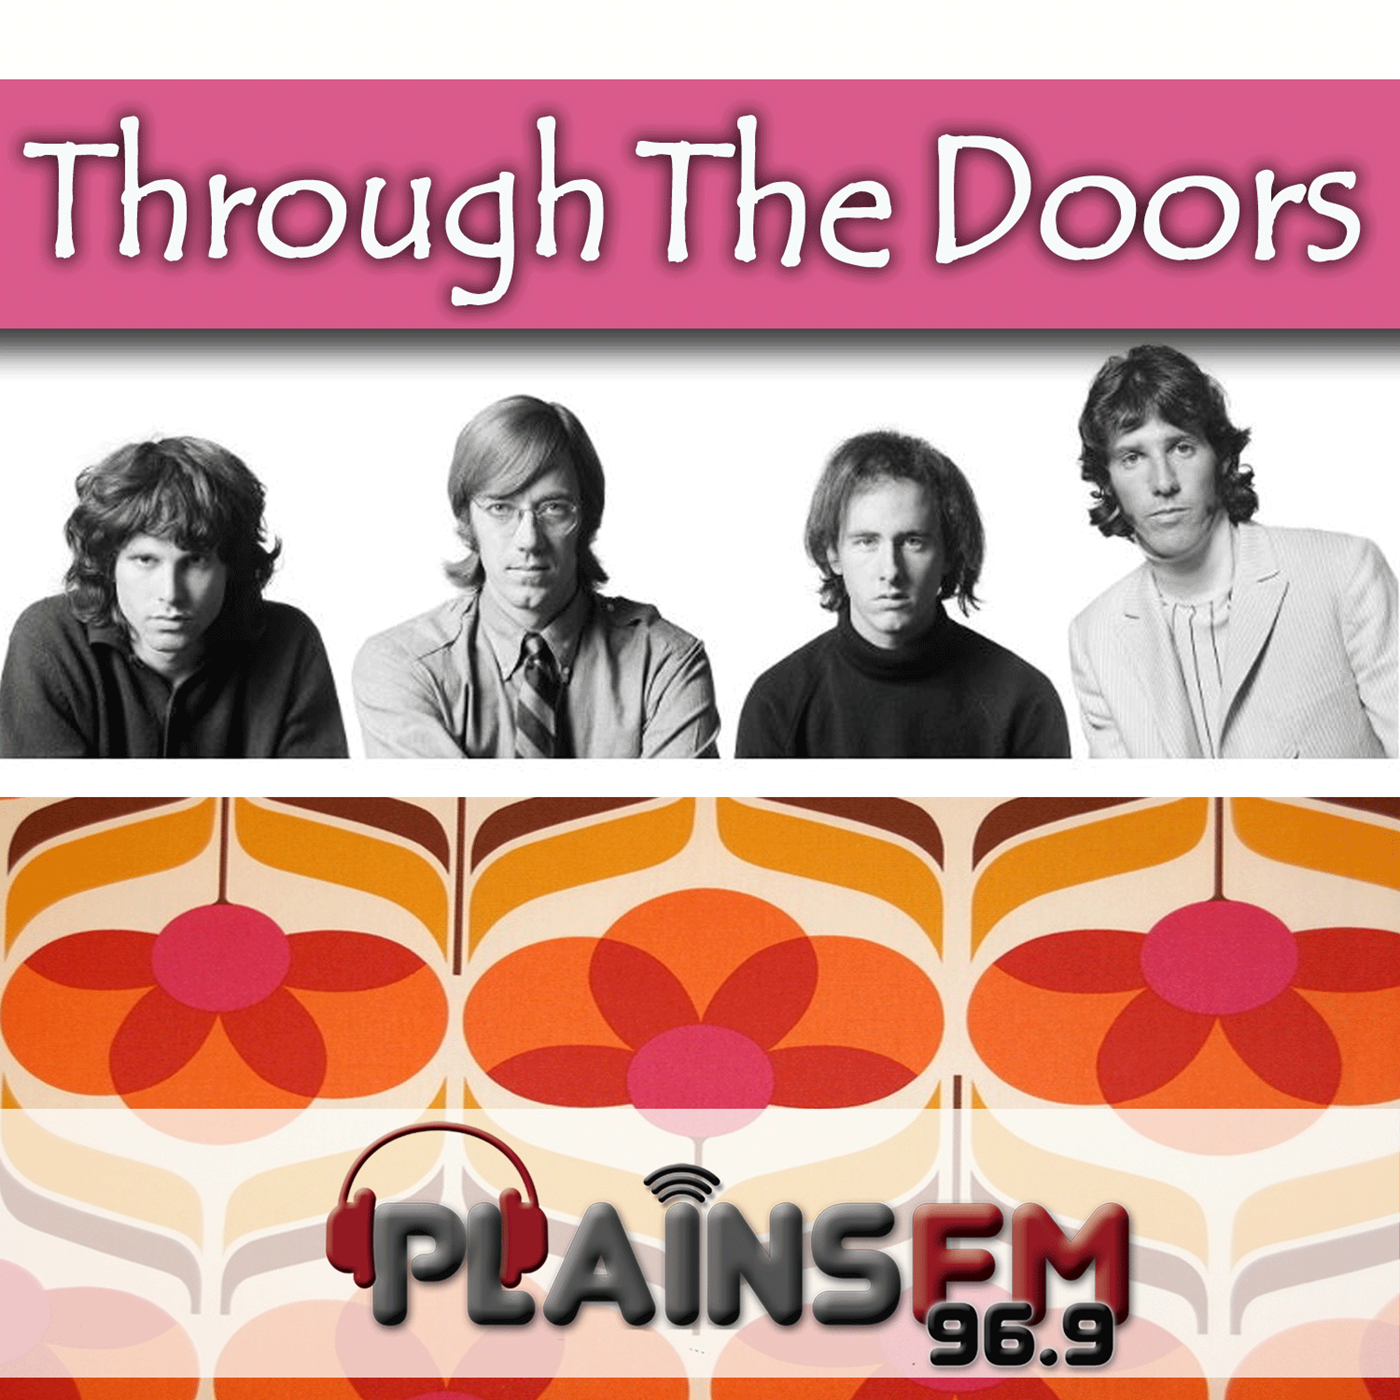 https://cdn.accessradio.org/StationFolder/plainsfm/Images/ThroughTheDoors.png